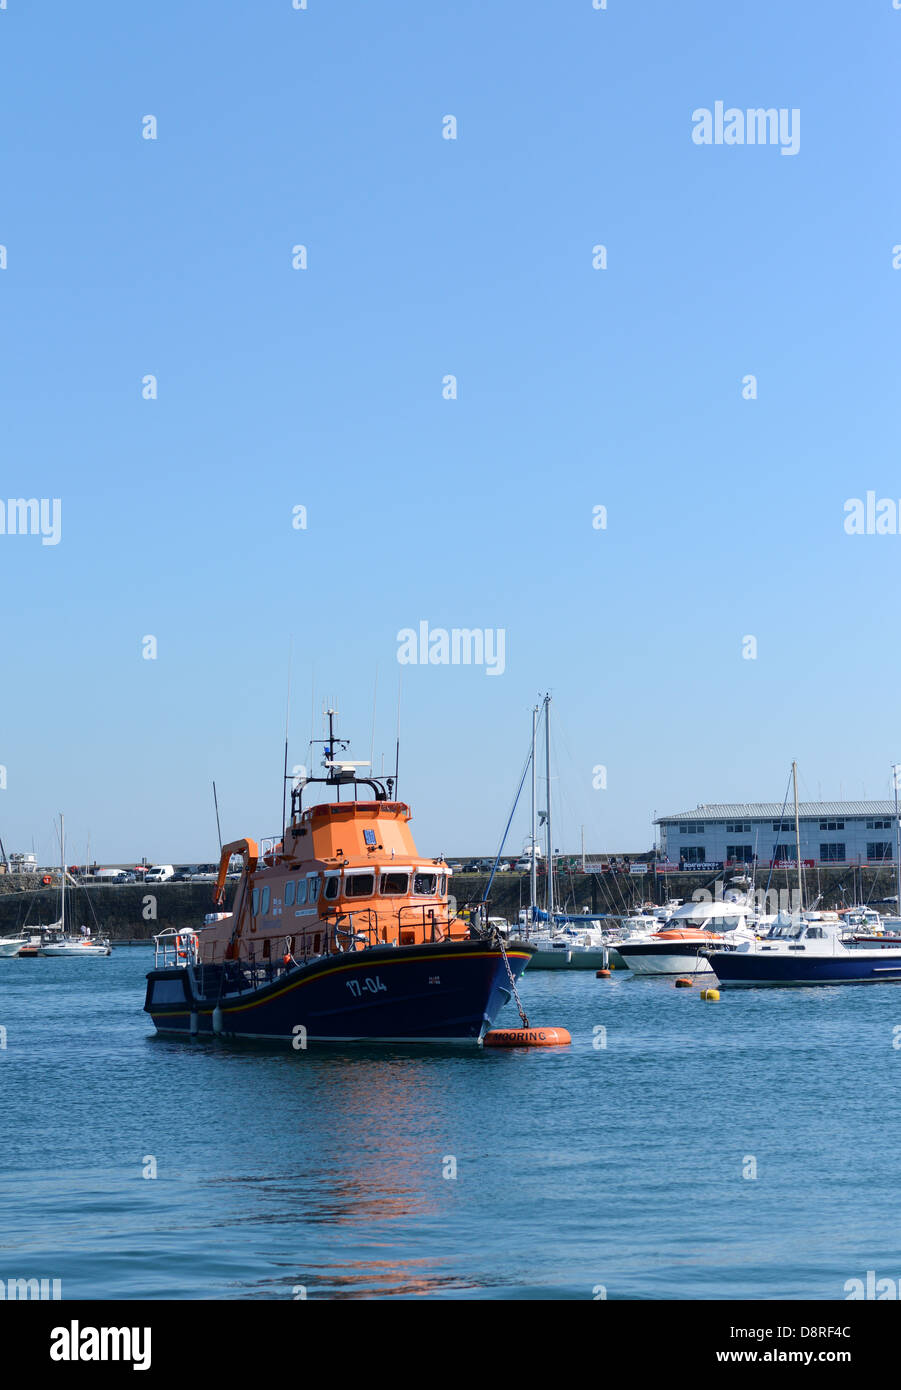 Guernsey Lifeboat in St Peter Port harbour, Guernsey, Channel Islands, GB - Stock Image